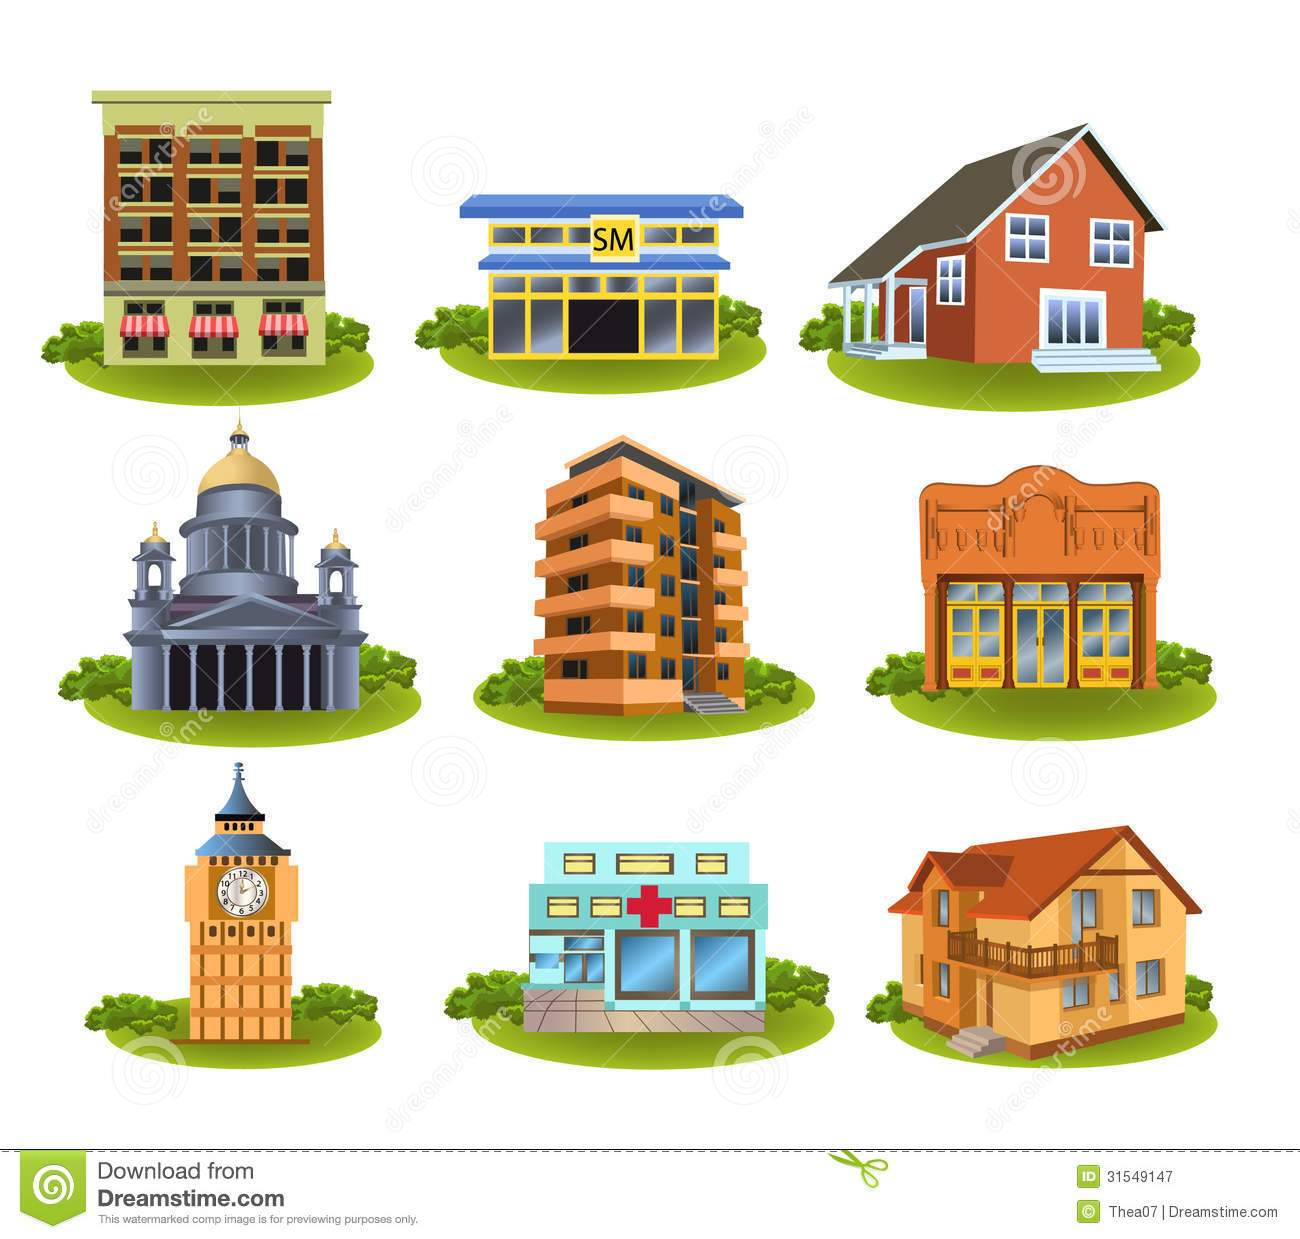 Pictures of different community places clipart 5 » Clipart.